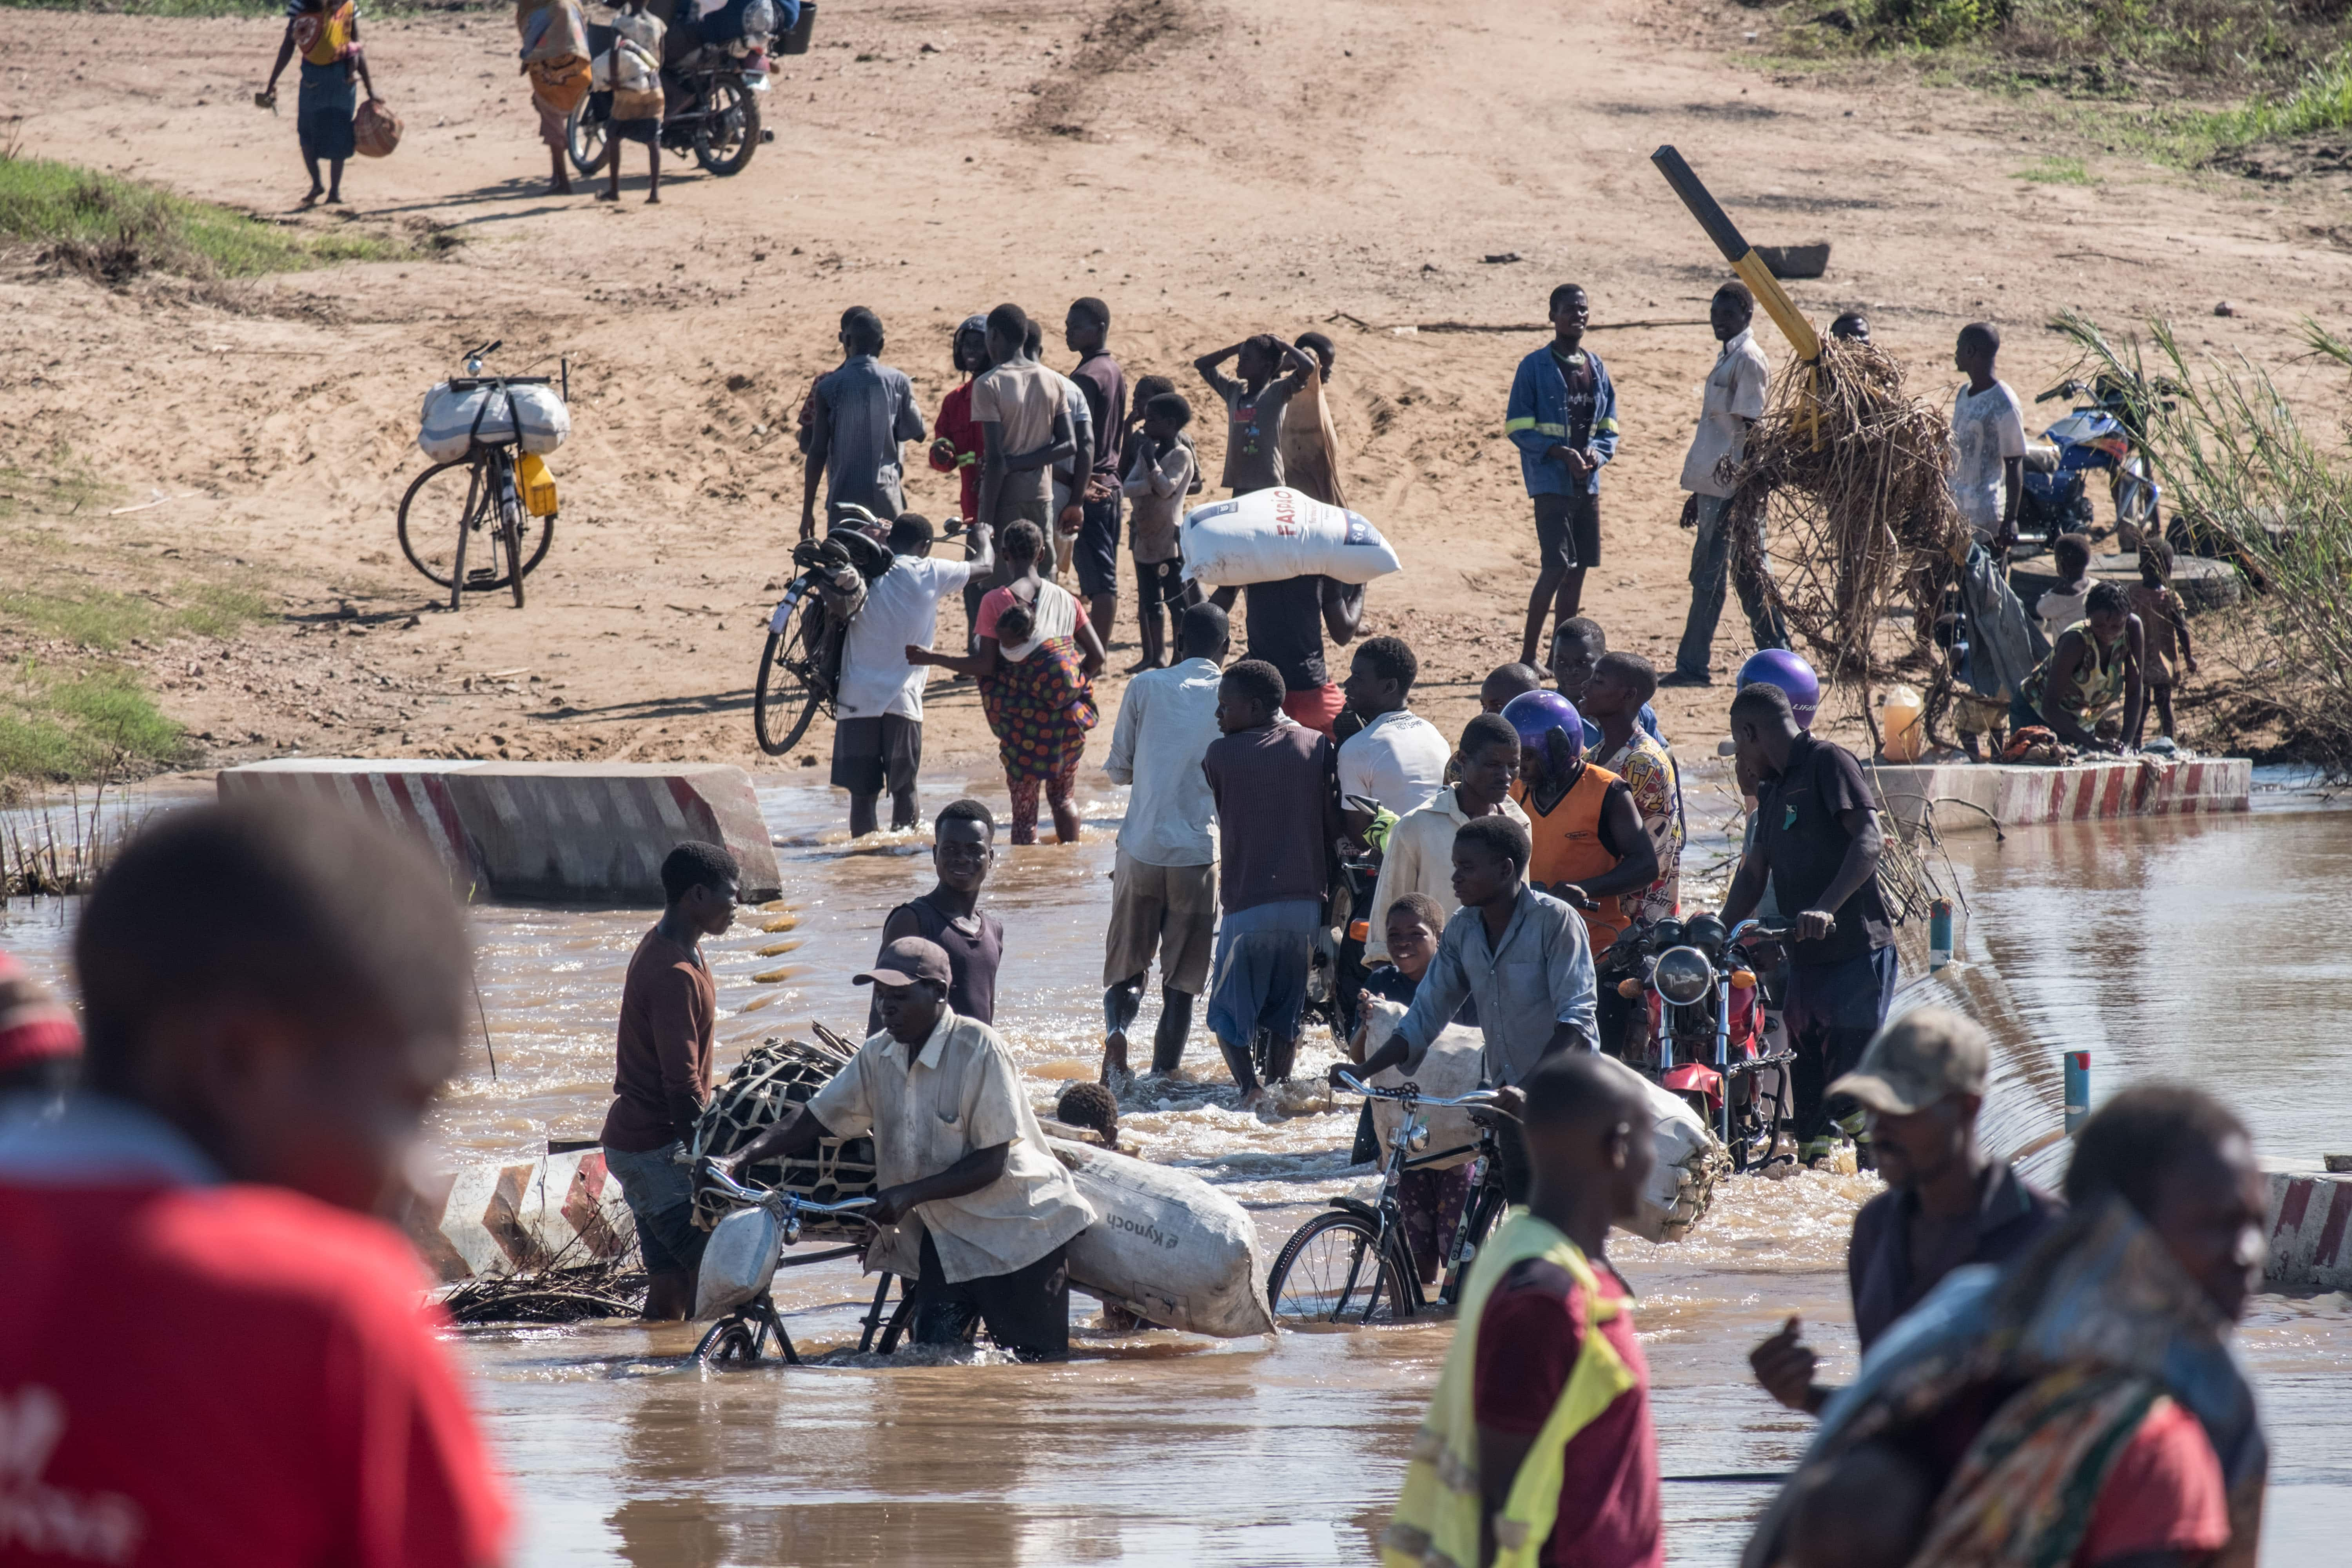 People wade across a river in flood near Nhamatanda, Mozambique.